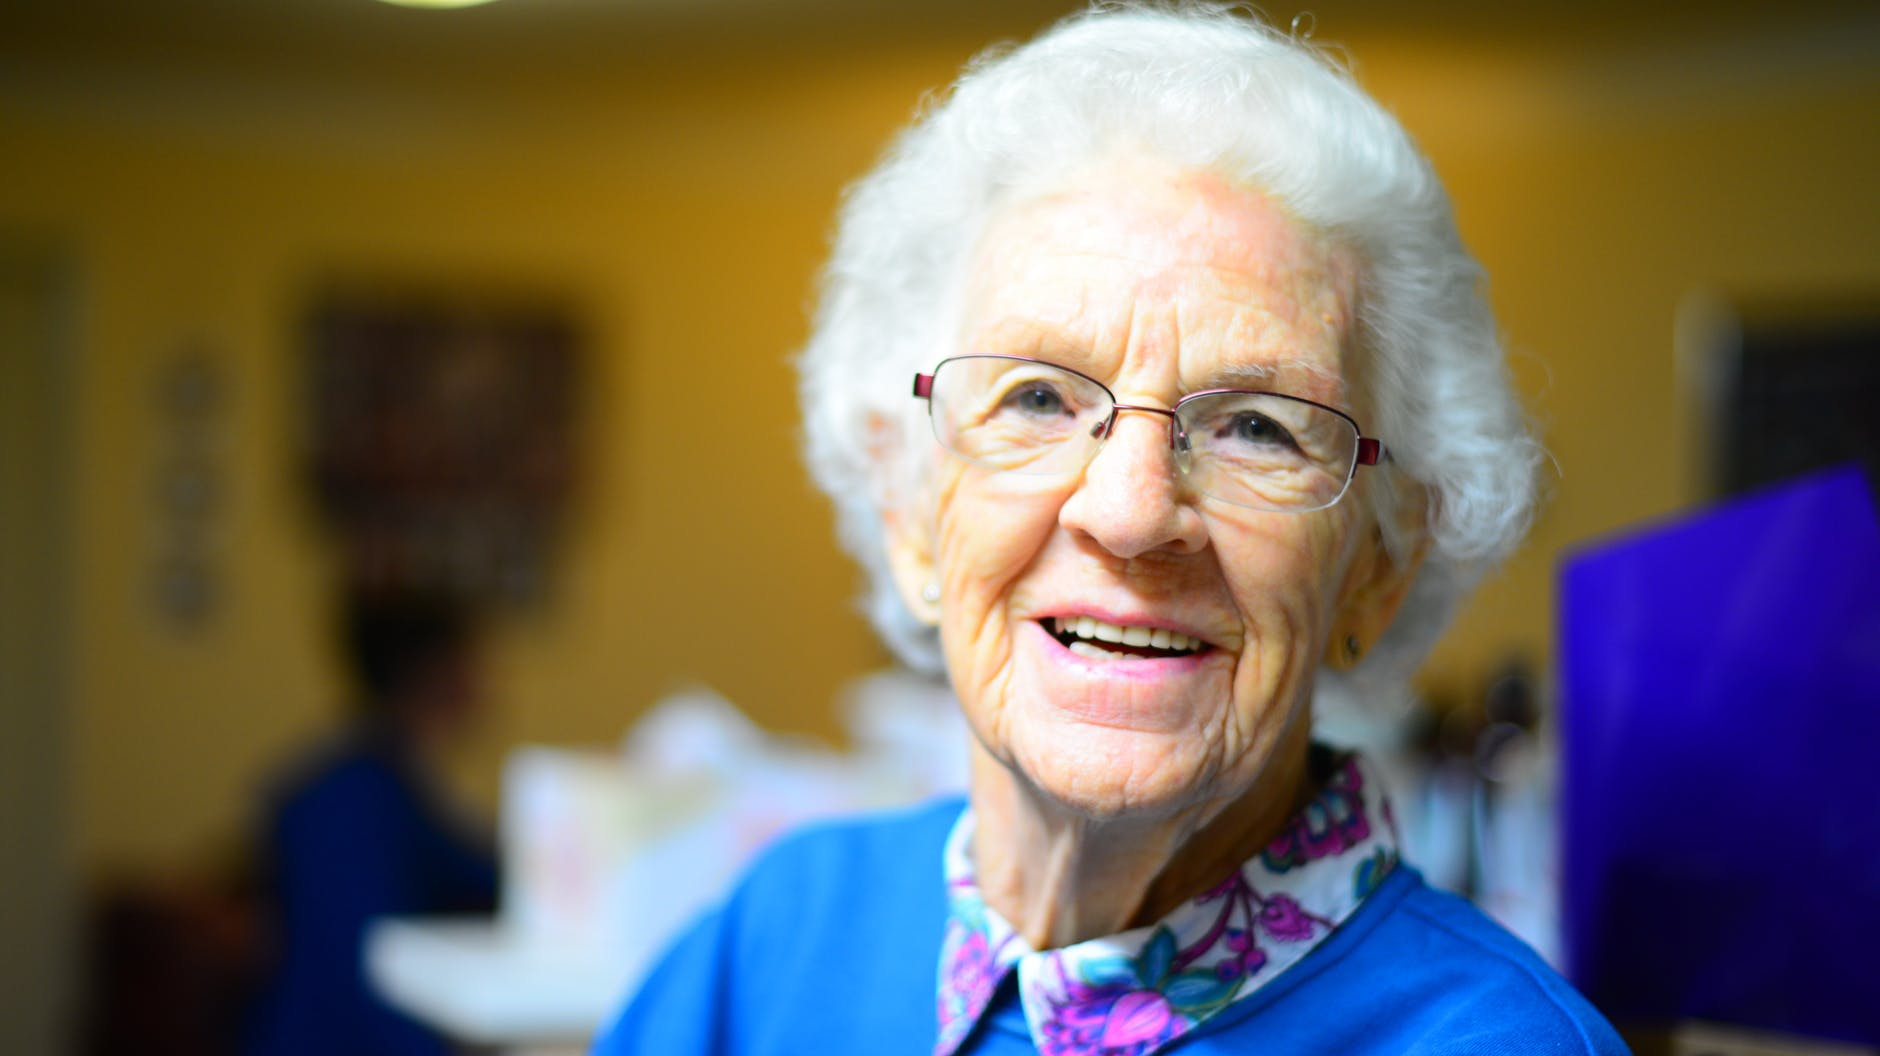 4 Tips on How to Help Relatives Maintain Their Independence